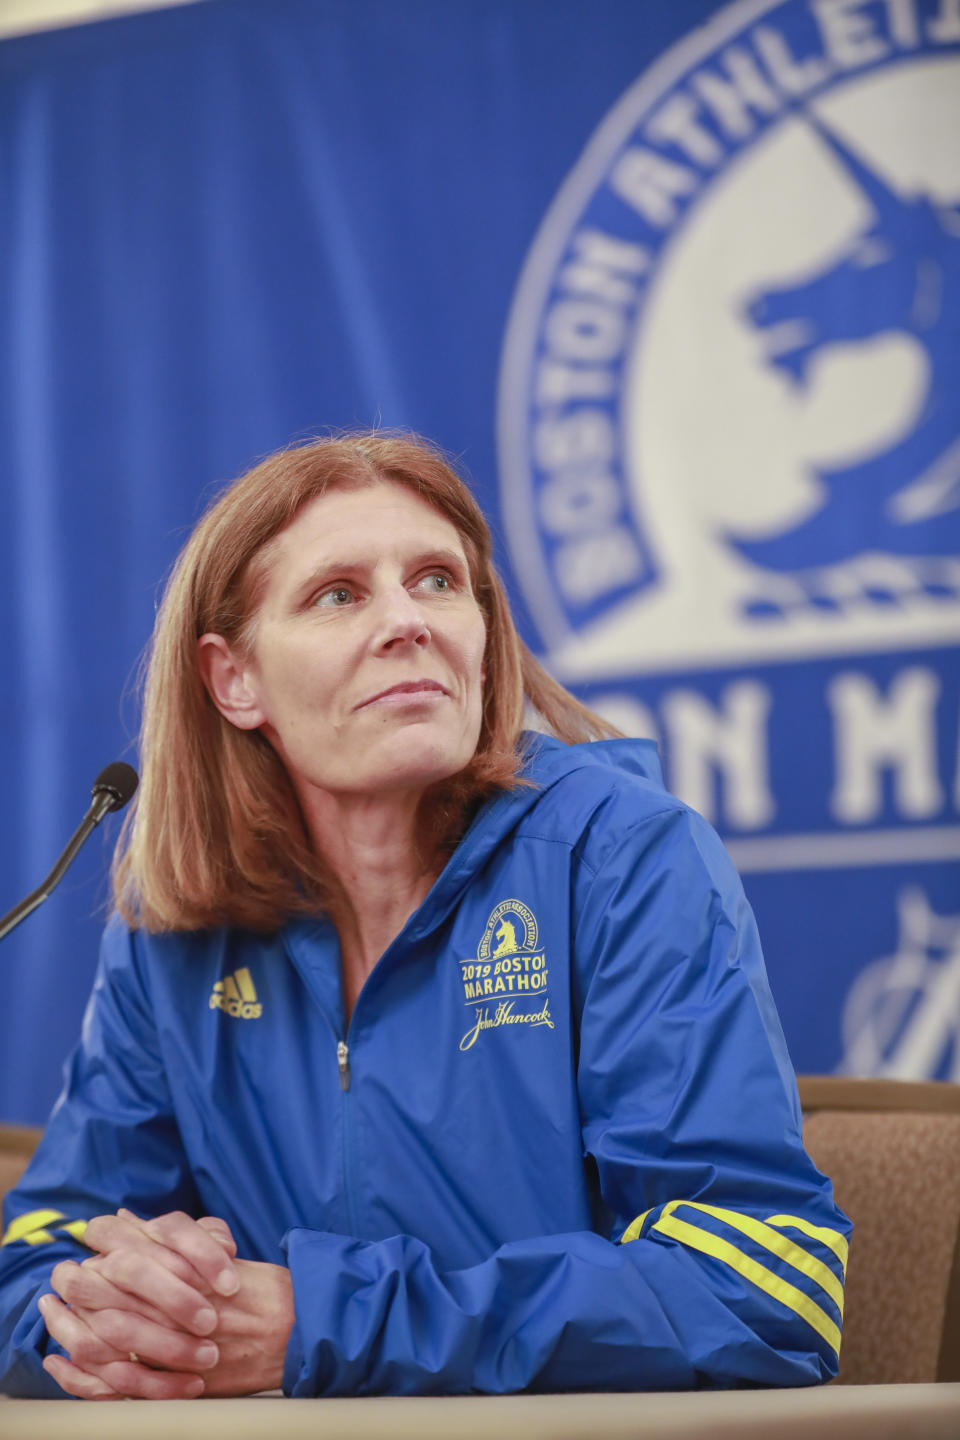 BOSTON, MA- April 11, 2019: B.A.A. Athletes with Disabilities Manager, Marla Runyan listens to a question during a B.A.A. media conference at the Fairmont Copley Plaza on Thursday, April 11, 2019 in Boston, Massachusetts. (Staff photo By Nicolaus Czarnecki/MediaNews Group/Boston Herald) (Photo by Nicolaus Czarnecki/MediaNews Group/Boston Herald via Getty Images)